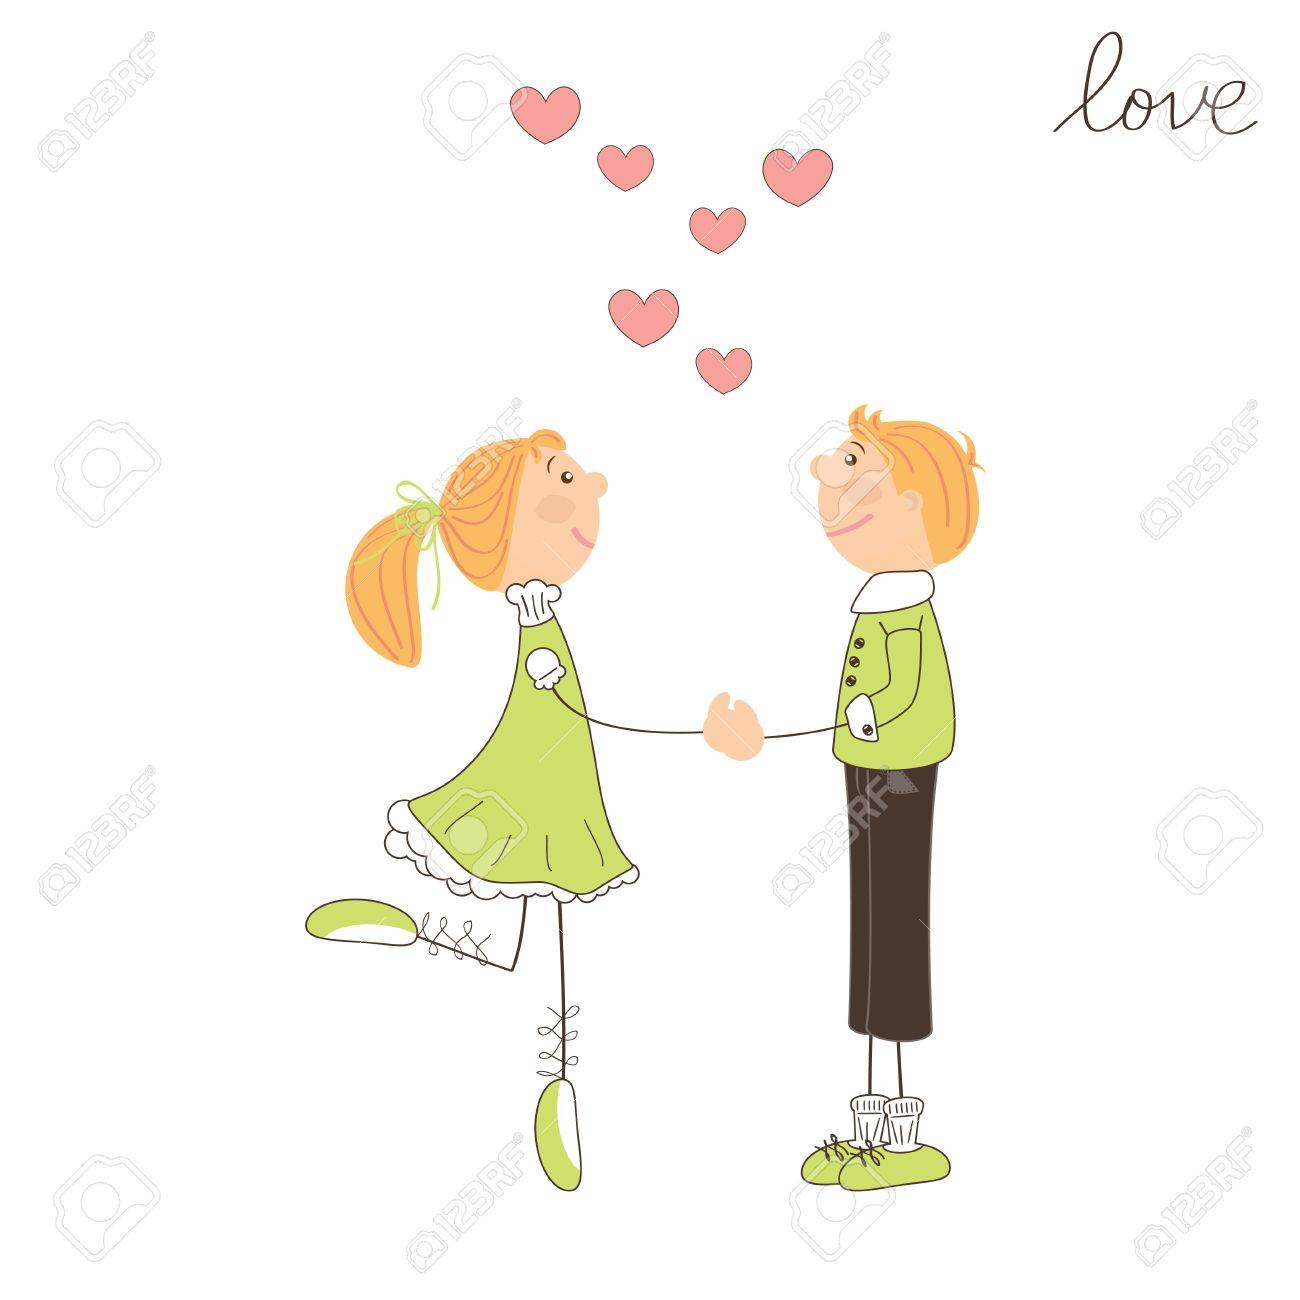 Boy and girl fall in love. Valentine day illustration Stock Vector - 17024173